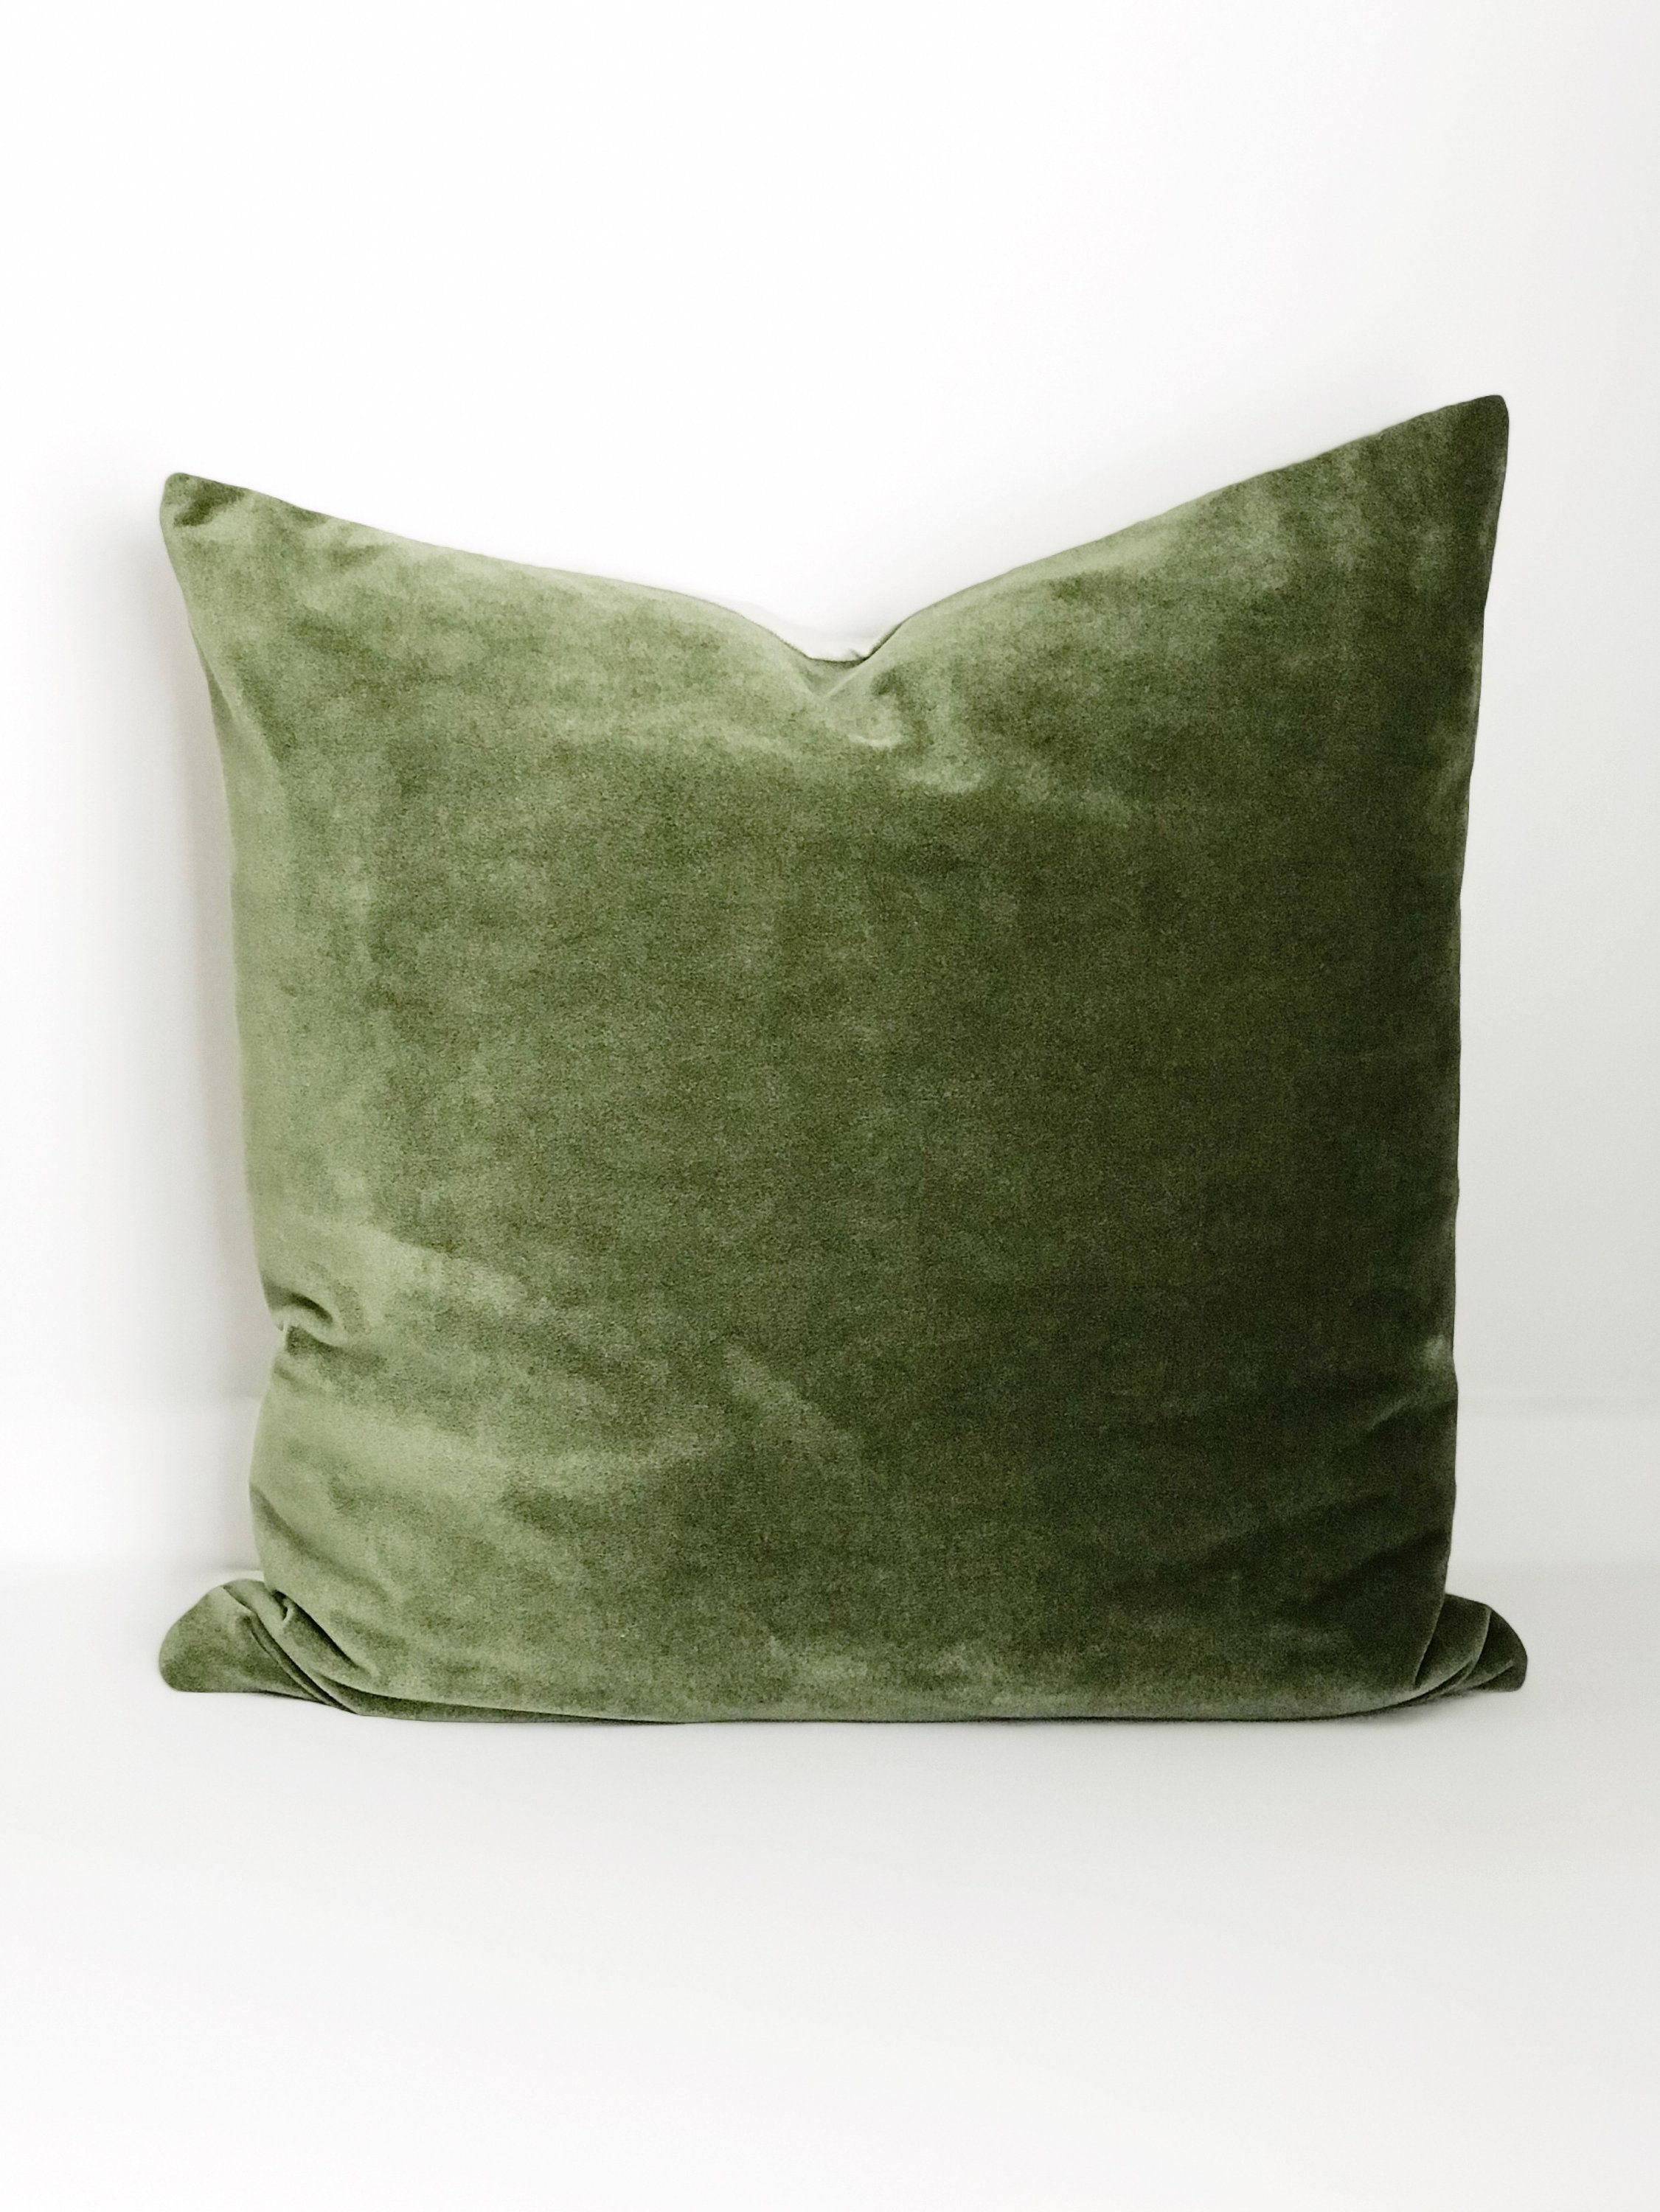 Boho Pillow Velvet Pillow Cover Olive Green Pillow Pillow Covers Throw Pillow Decorative Pillows Boh Olive Green Pillow Green Velvet Pillow Boho Pillows